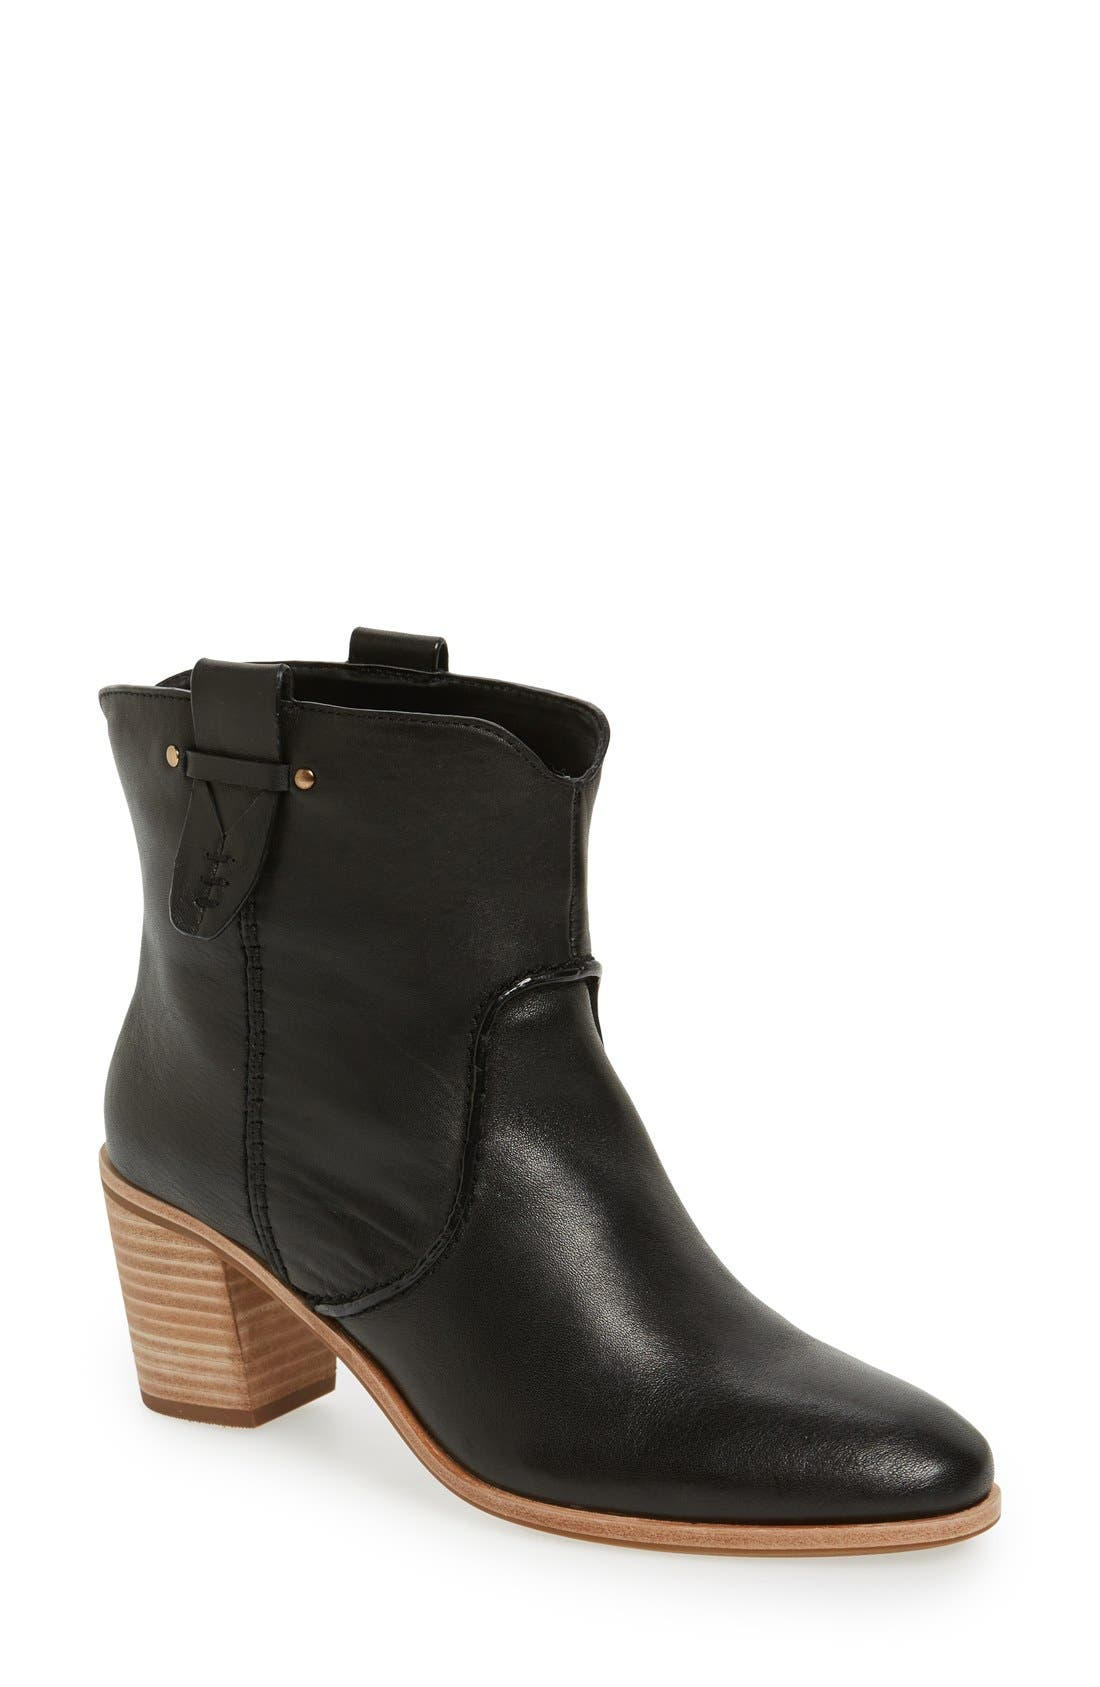 'Sophia' Pull-On Bootie,                         Main,                         color, Black Leather